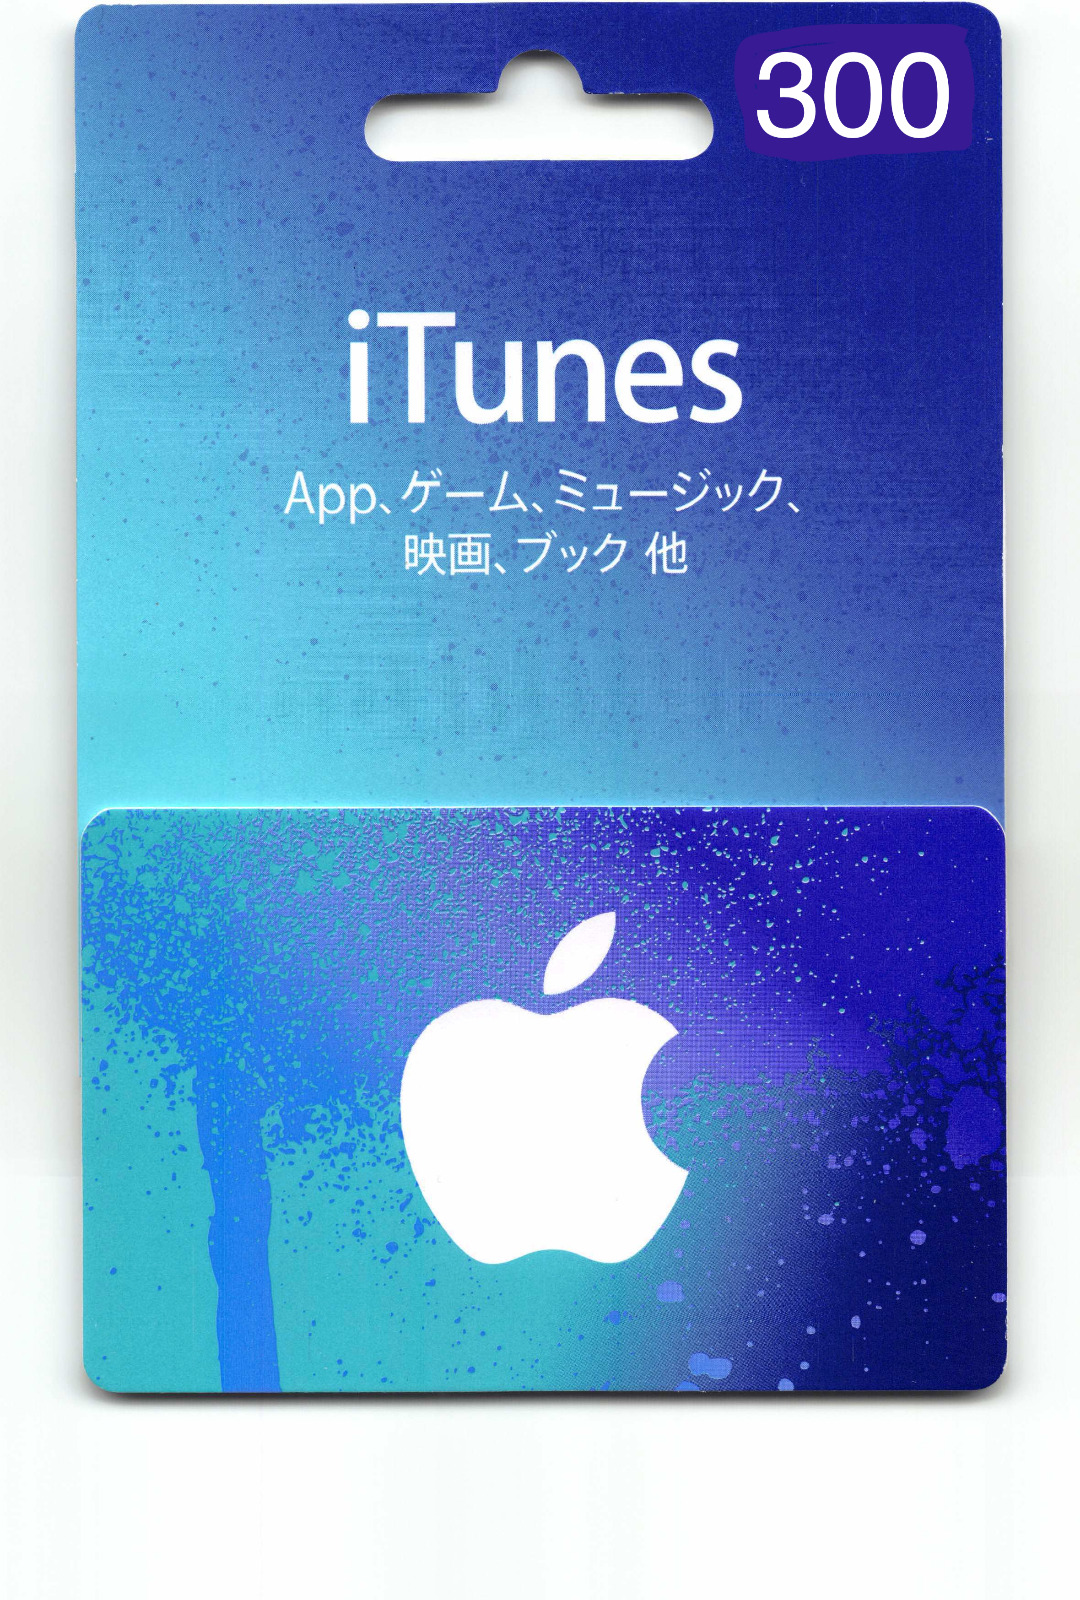 Itunes Gift Card 300 Yen Japan Apple Itunes Gift Code Certificate